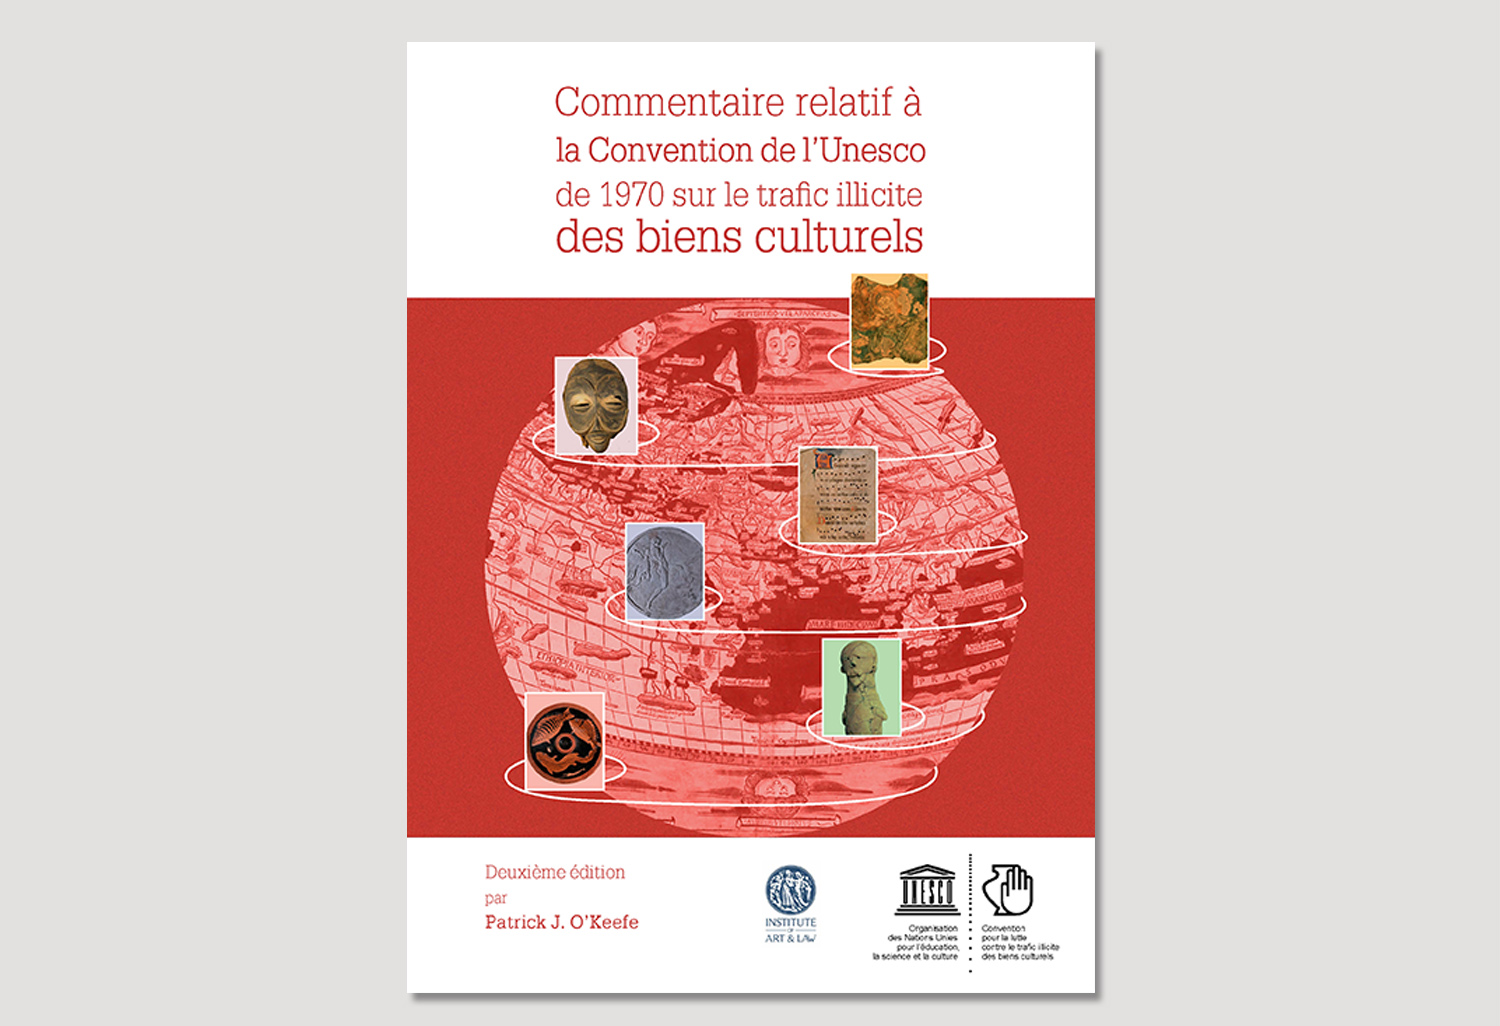 Commentaire cover.jpg